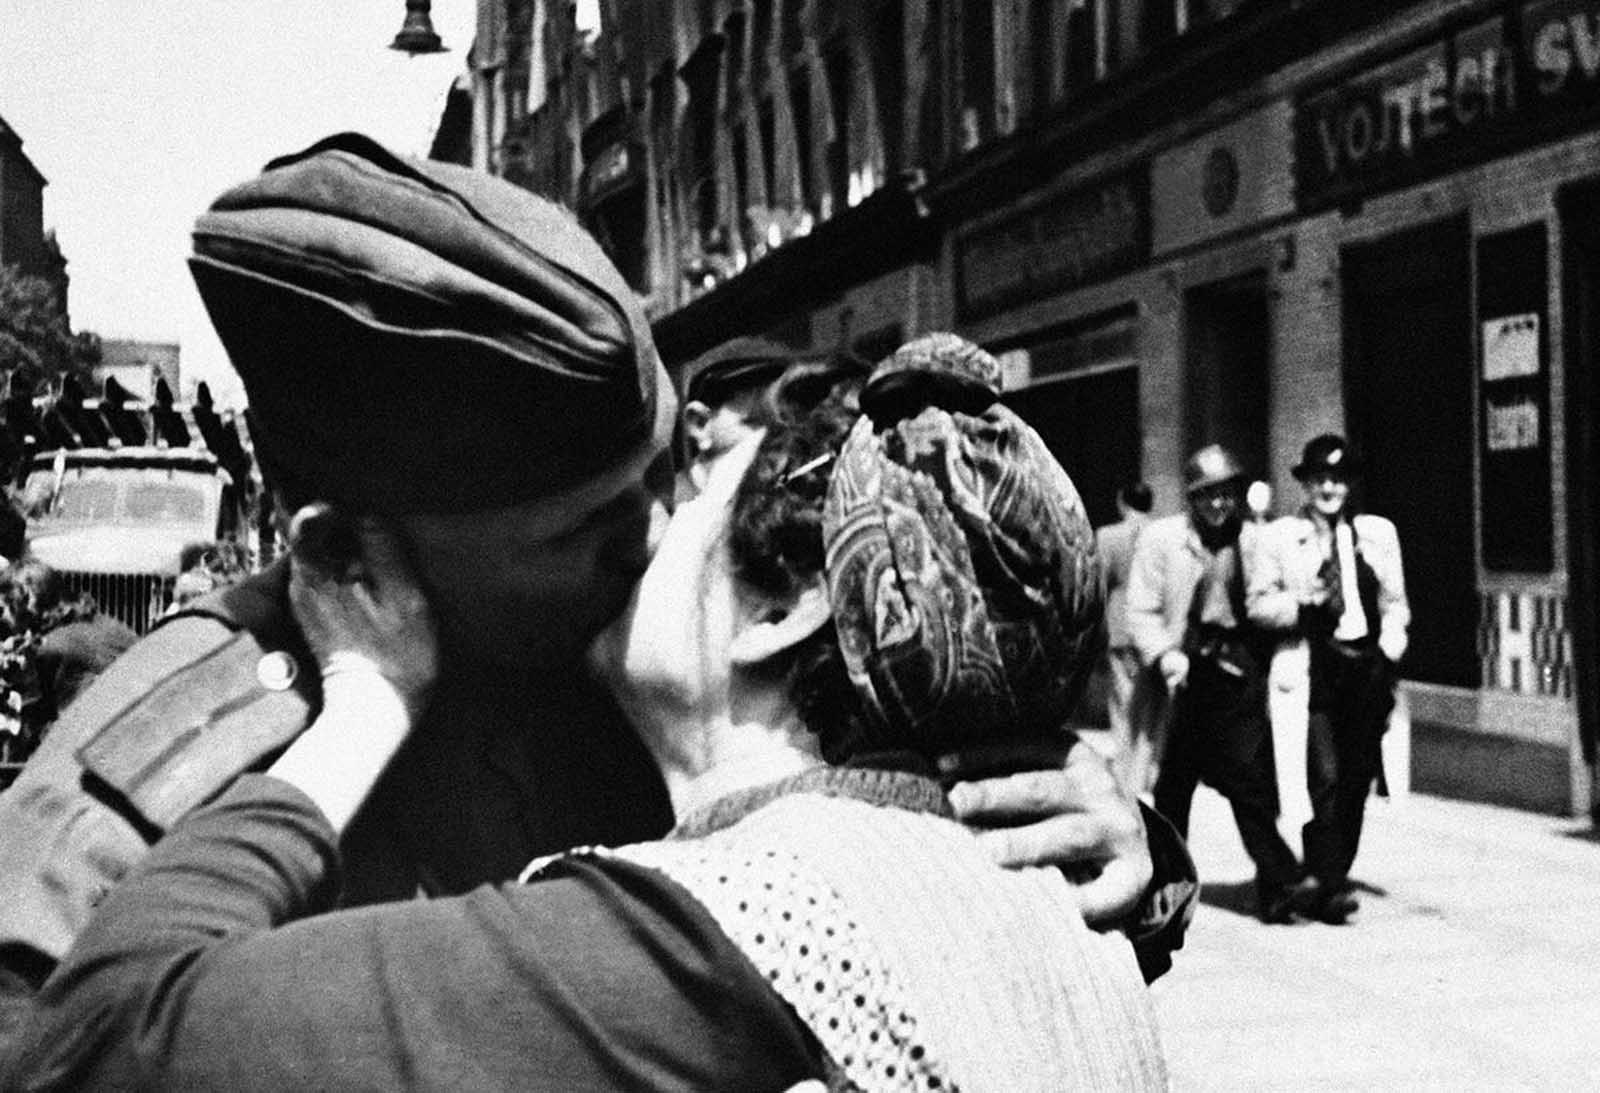 Overwhelmed with emotion, this Czech mother kisses a Russian soldier in Prague, Czech Republic on May 5, 1945, thanking one who fought to free her beloved home.